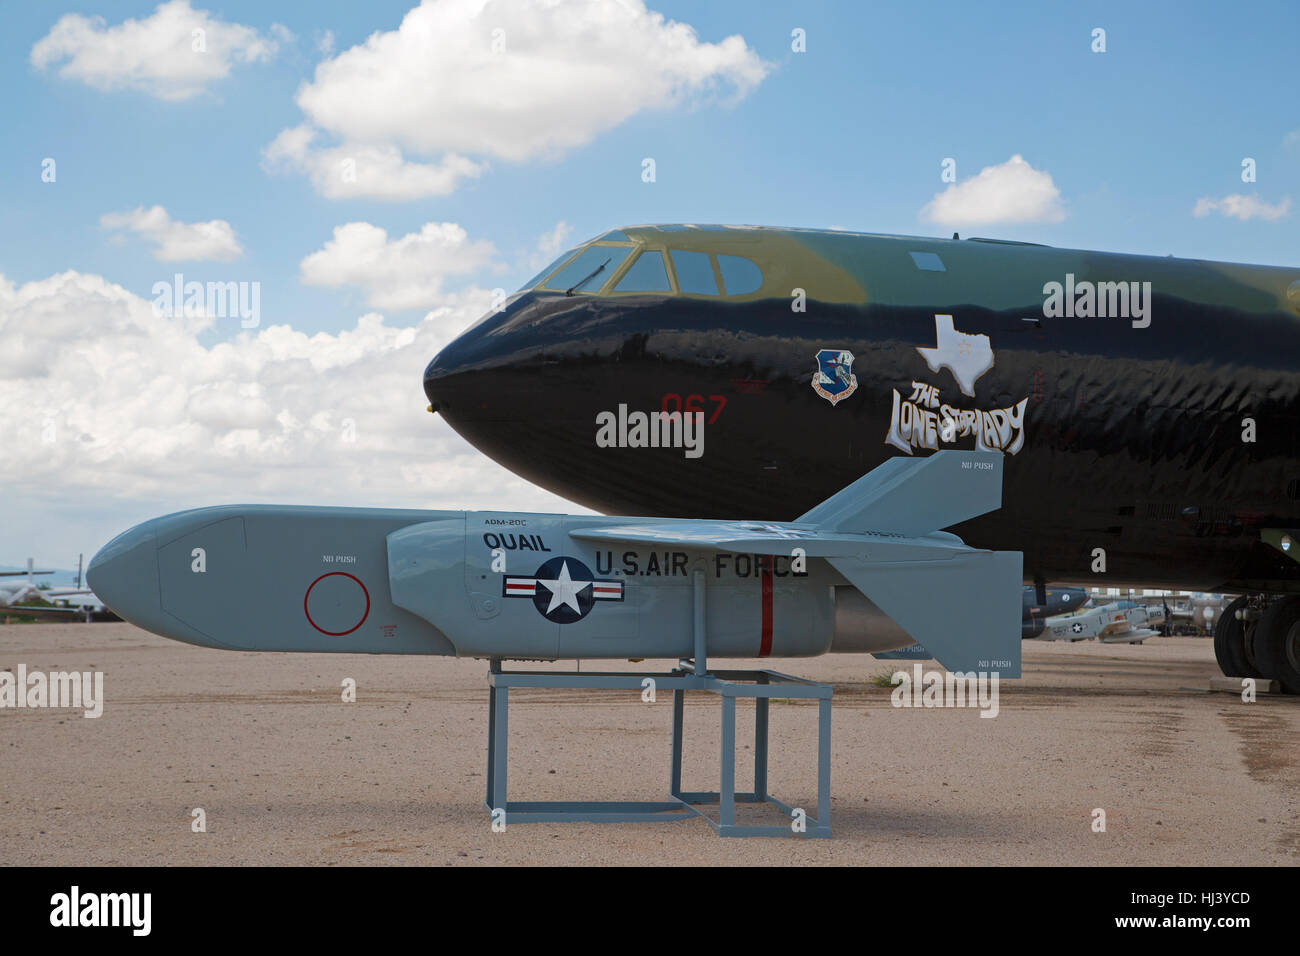 MC Donnell ADM - 20C Quail decoy missile in front of  Boeing B-52D Stratofortress Bomber on display at Pima Air - Stock Image